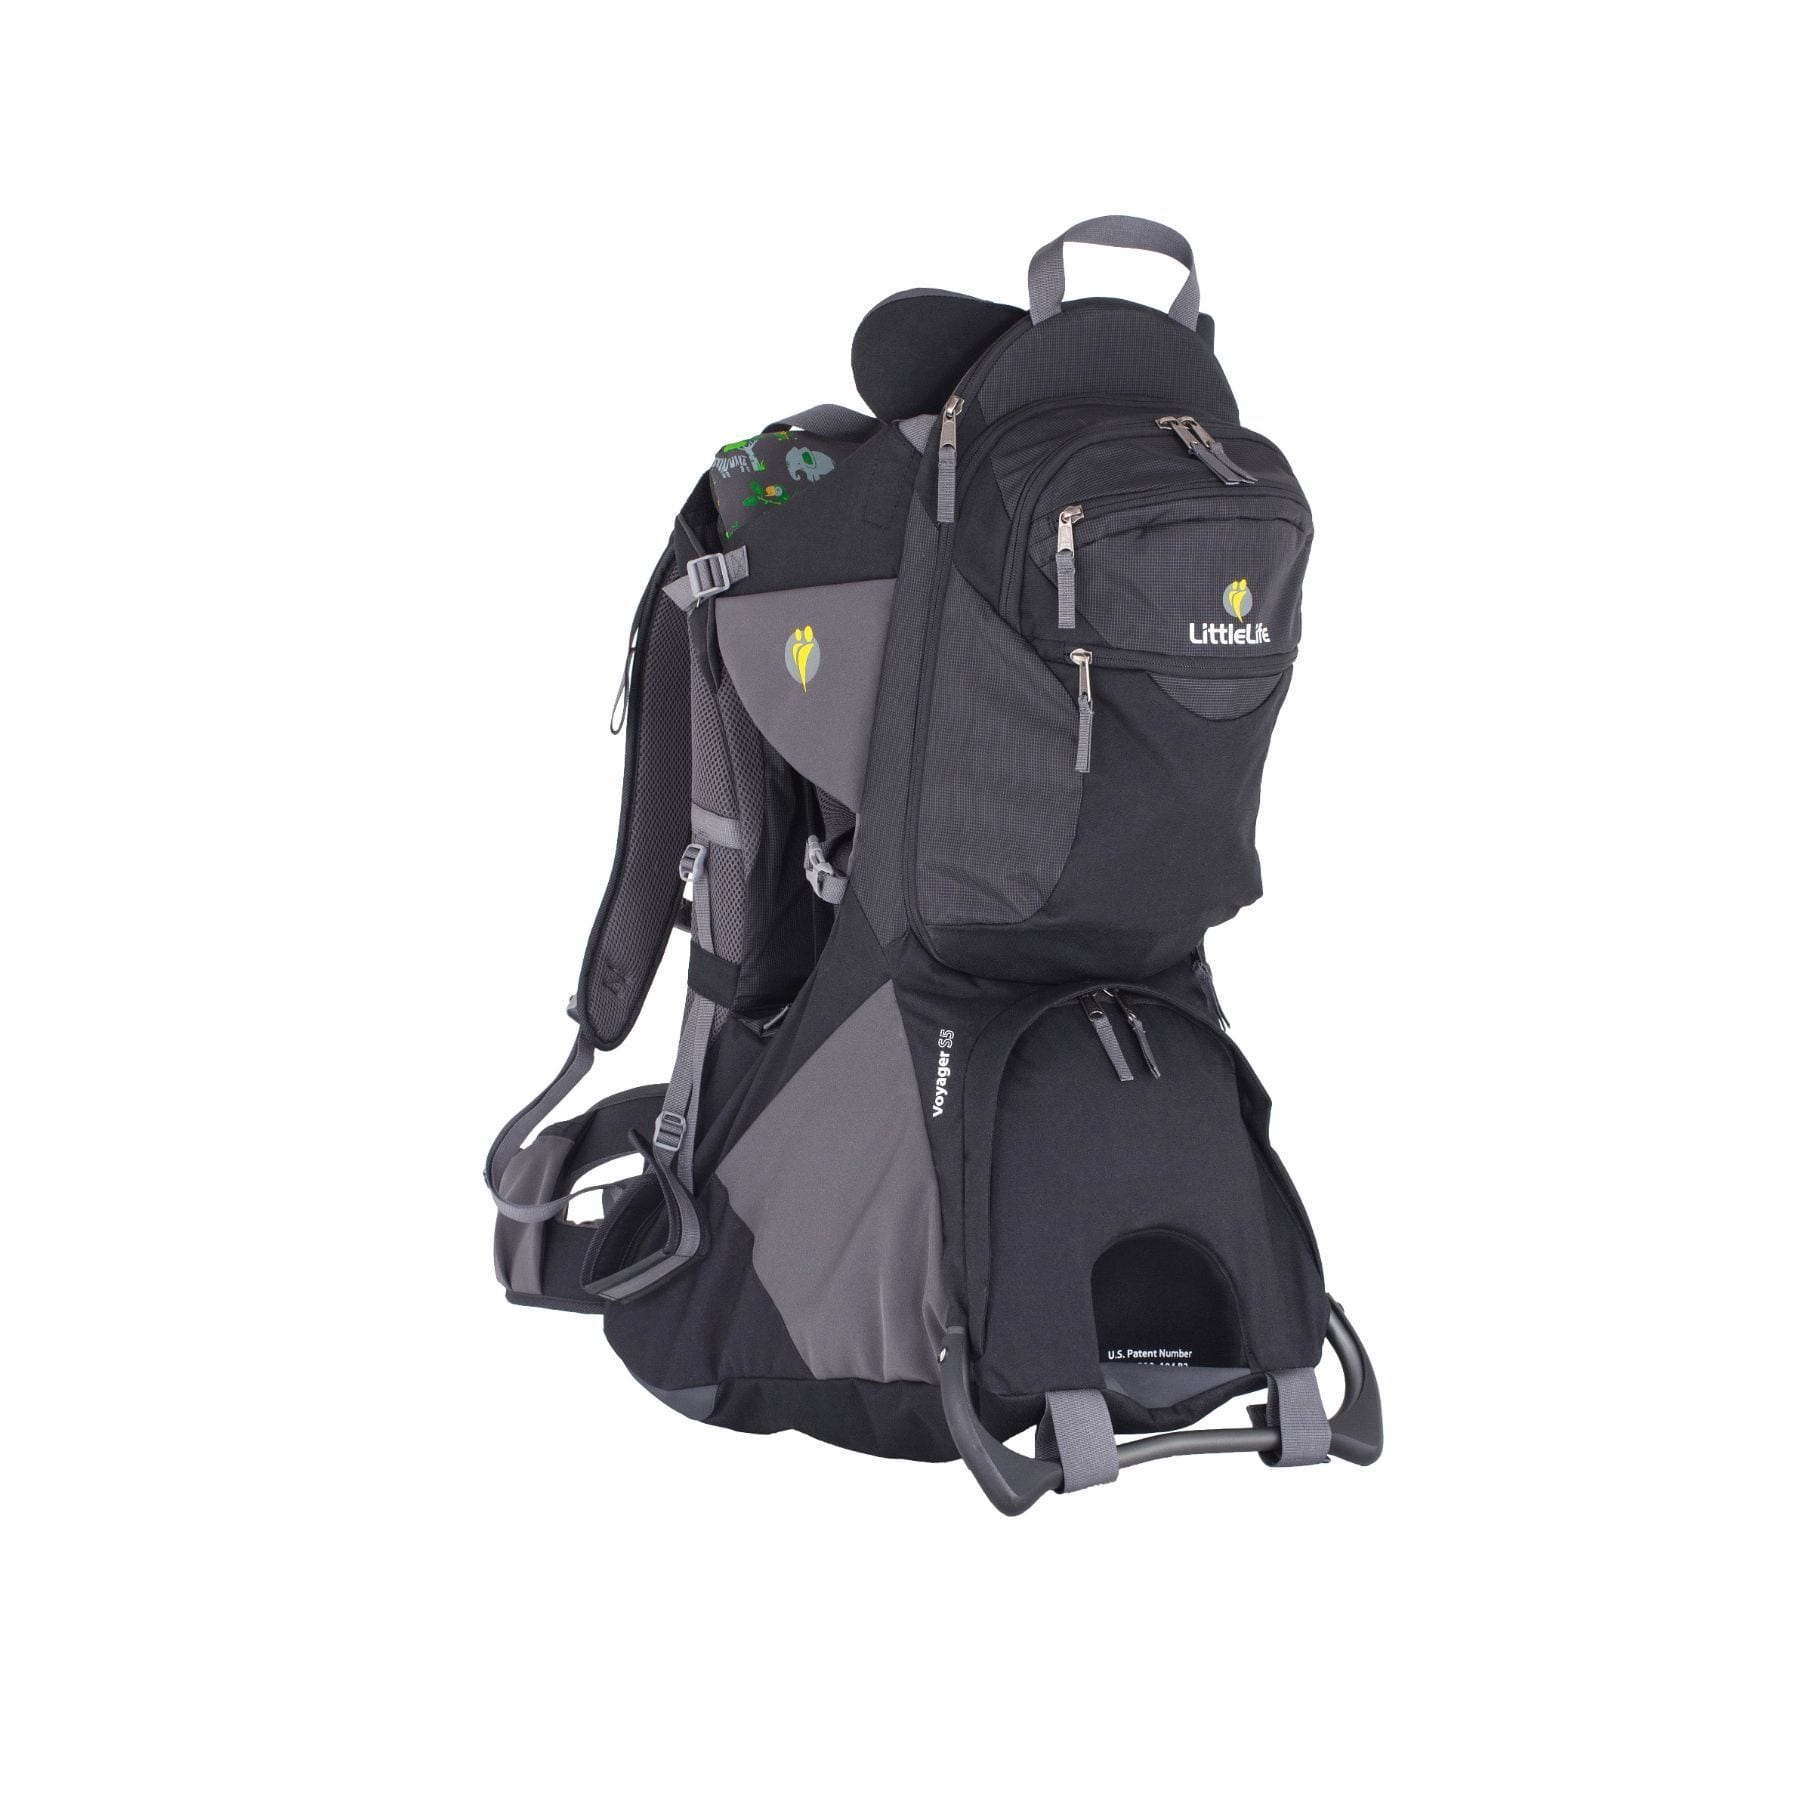 Little Life Voyager Child Carrier